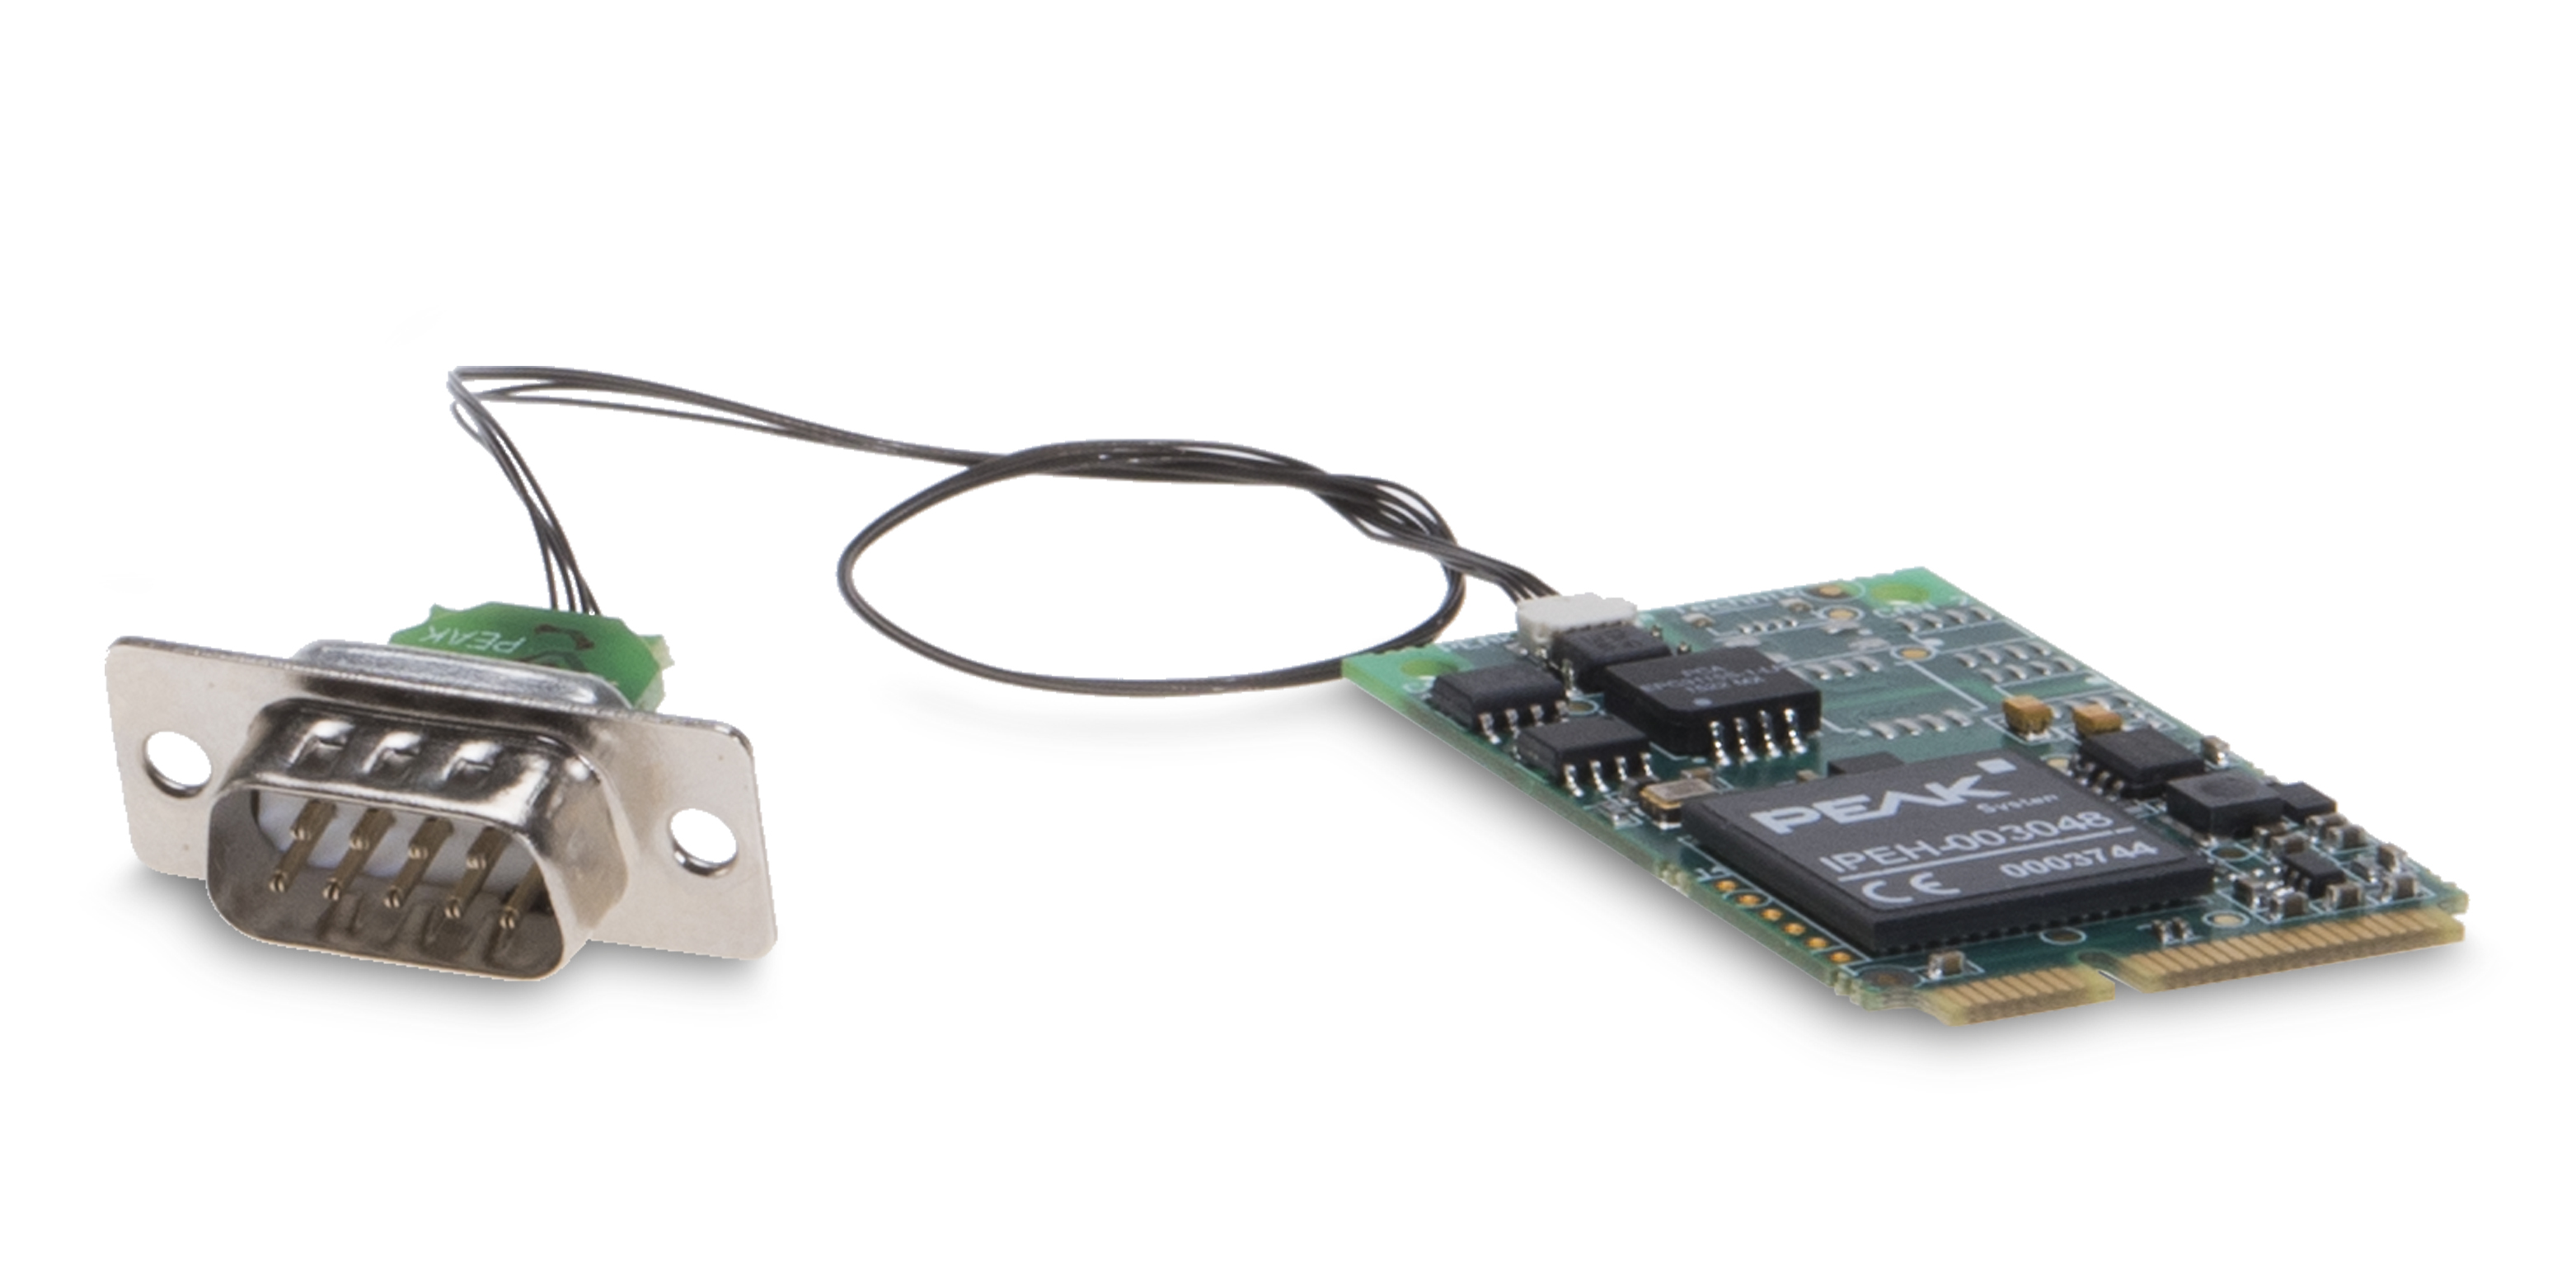 CAN interface for PCI Express Mini (PCIe)